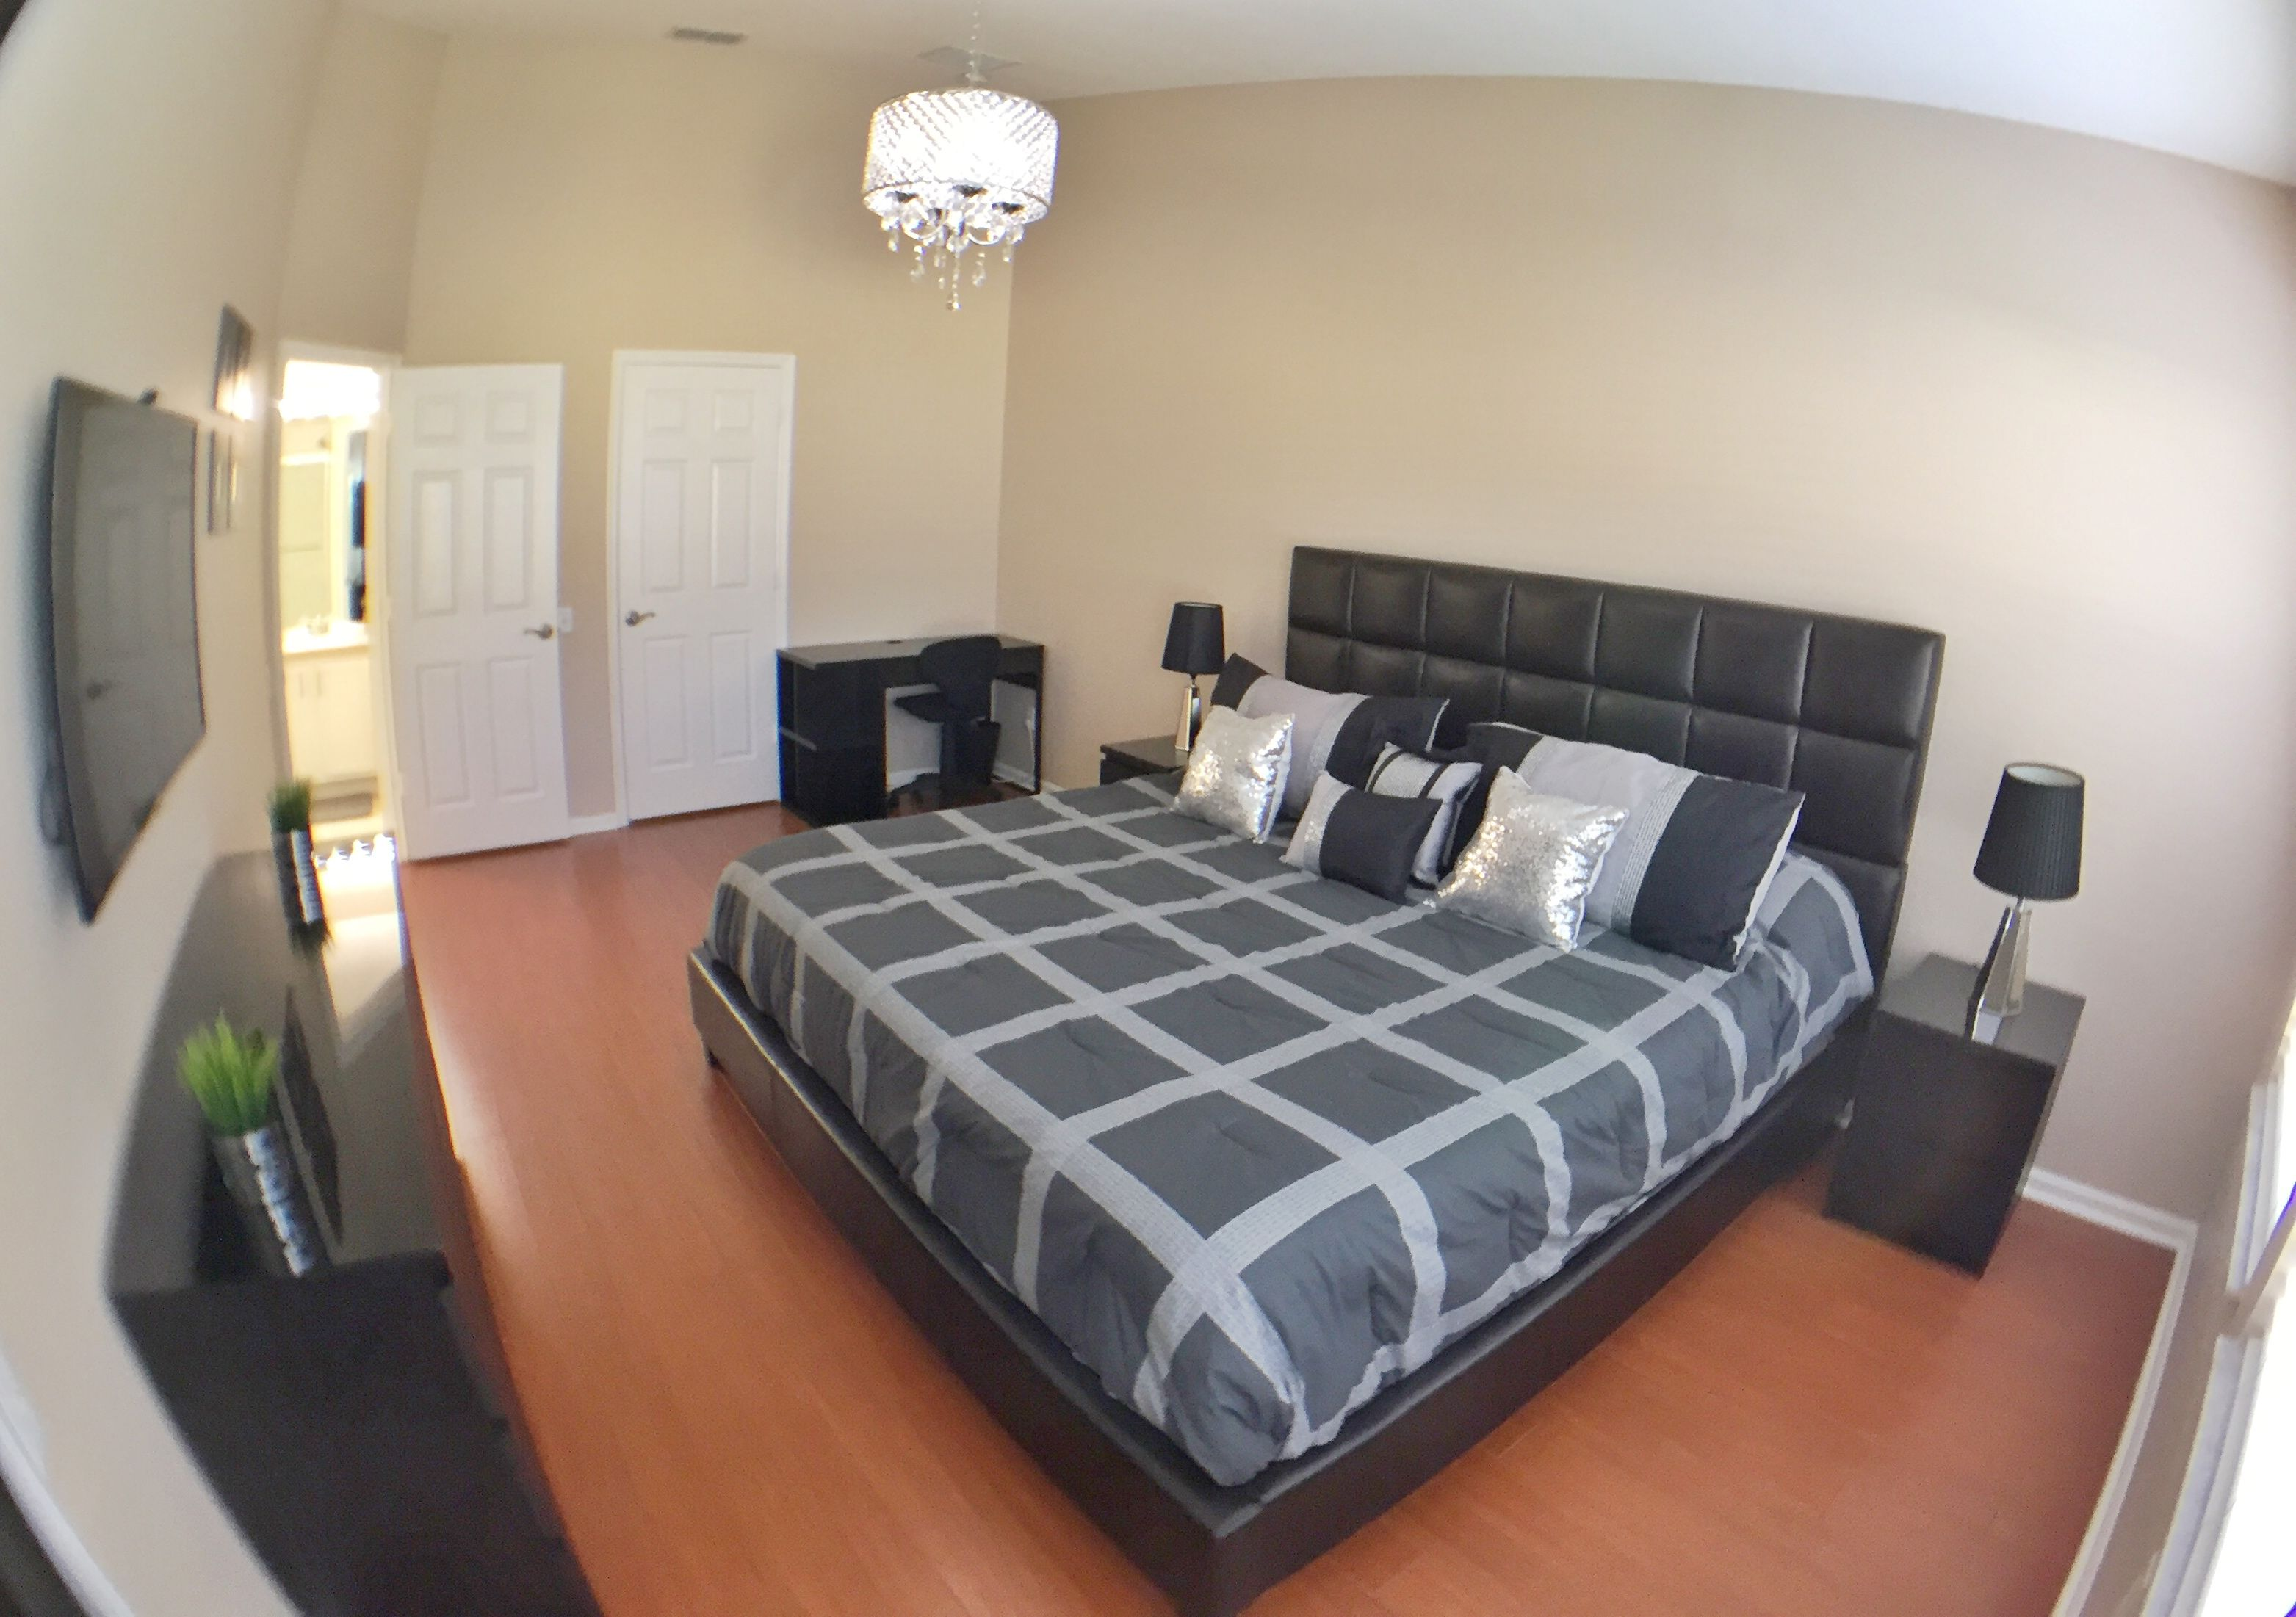 Amazing bedrooms in Orlando Awesome bedrooms, Corporate